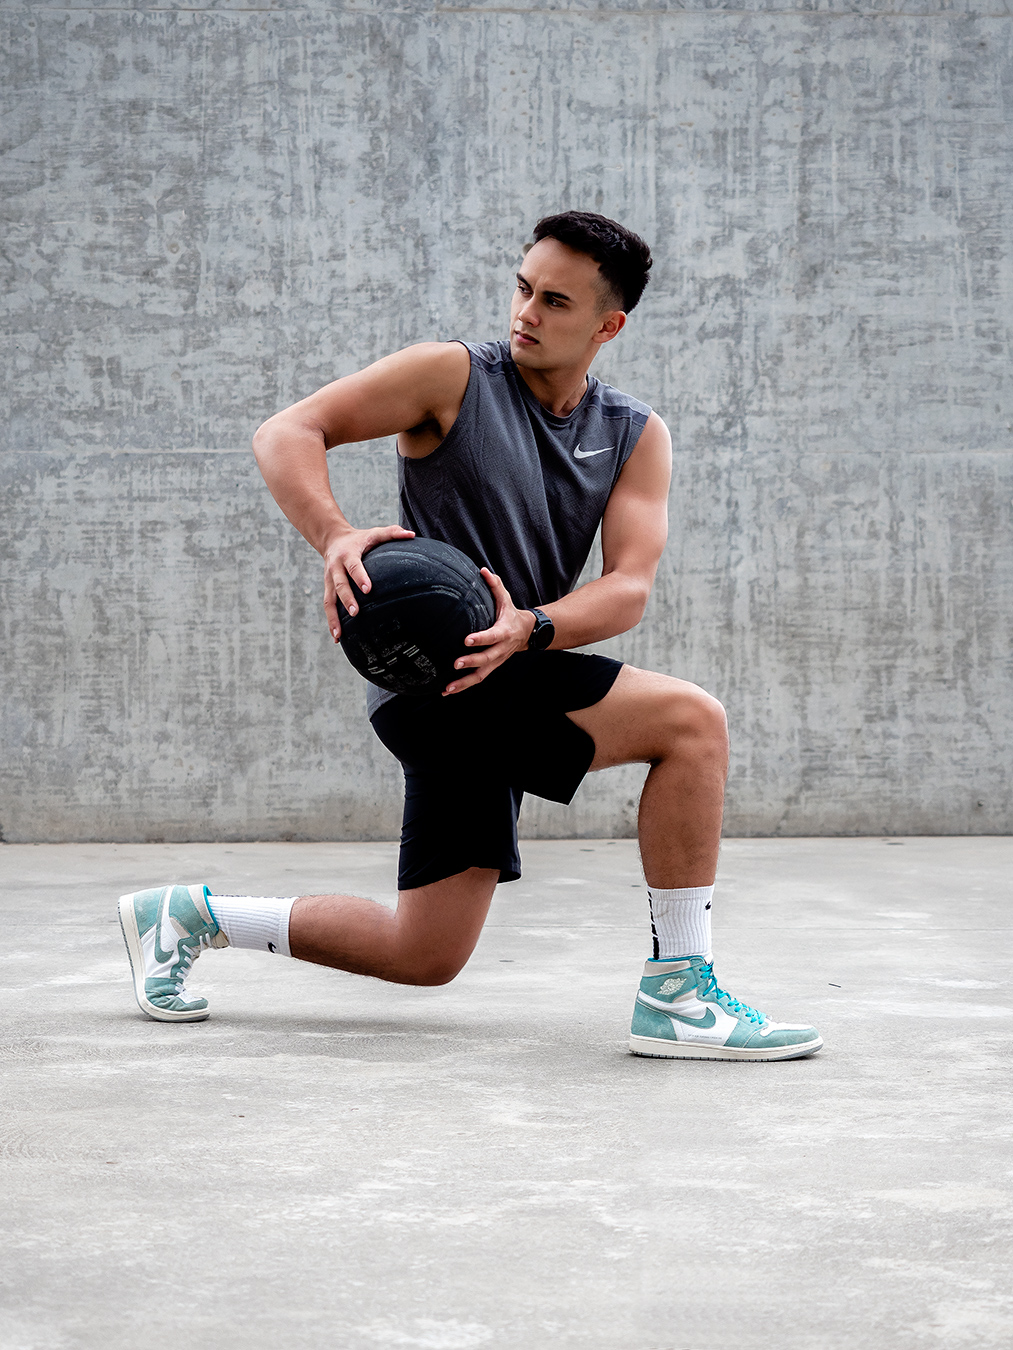 Professional formula one driver Luis lunging with medicne ball